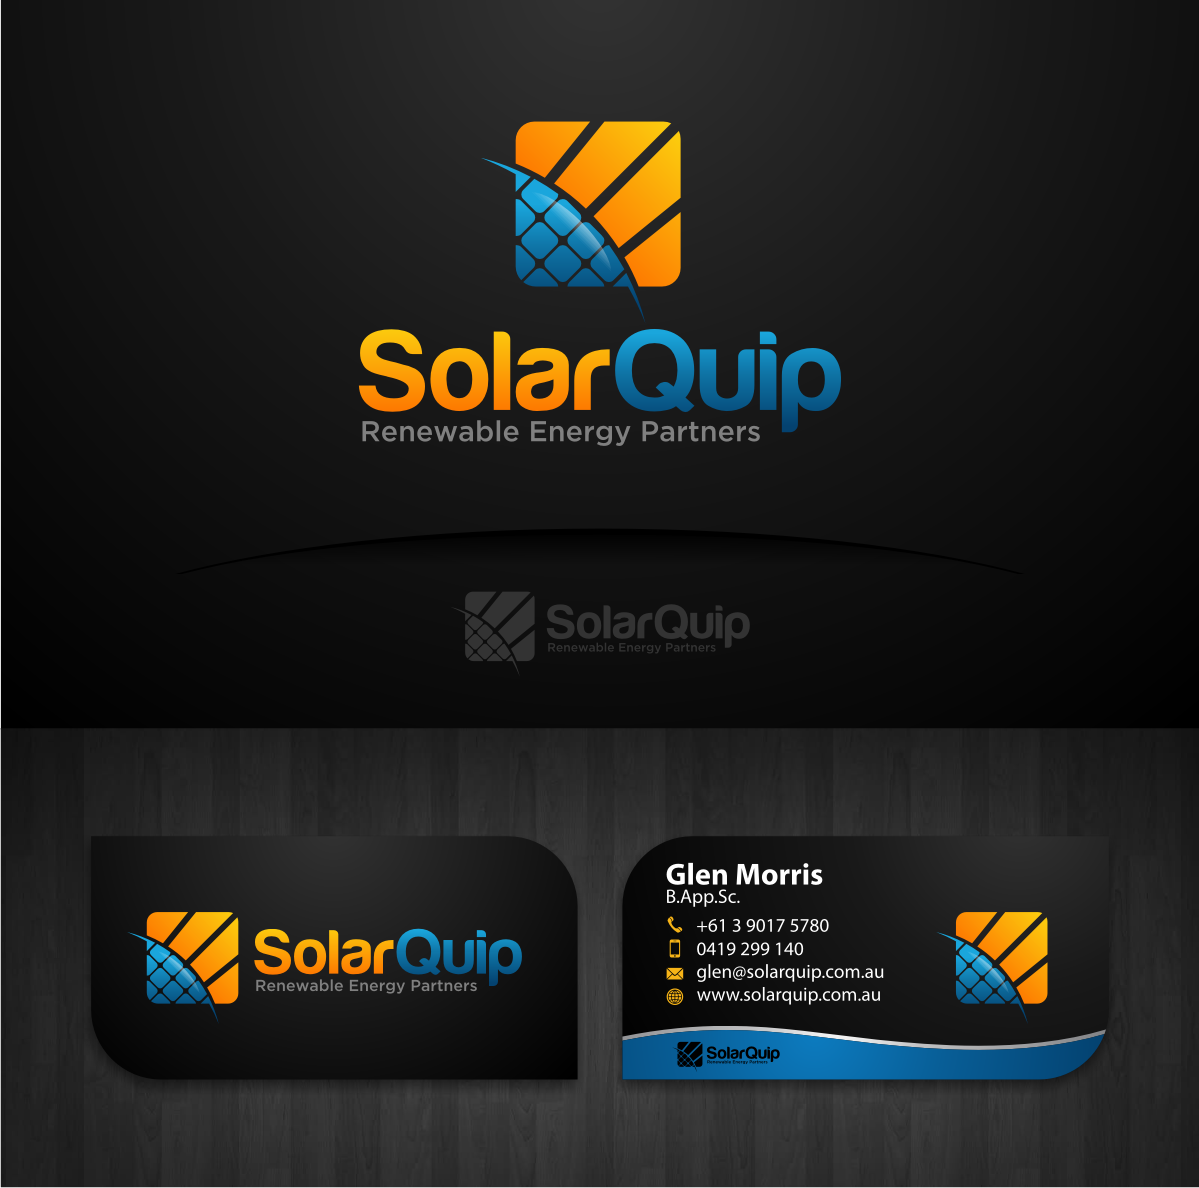 SolarQuip needs a new logo and business card